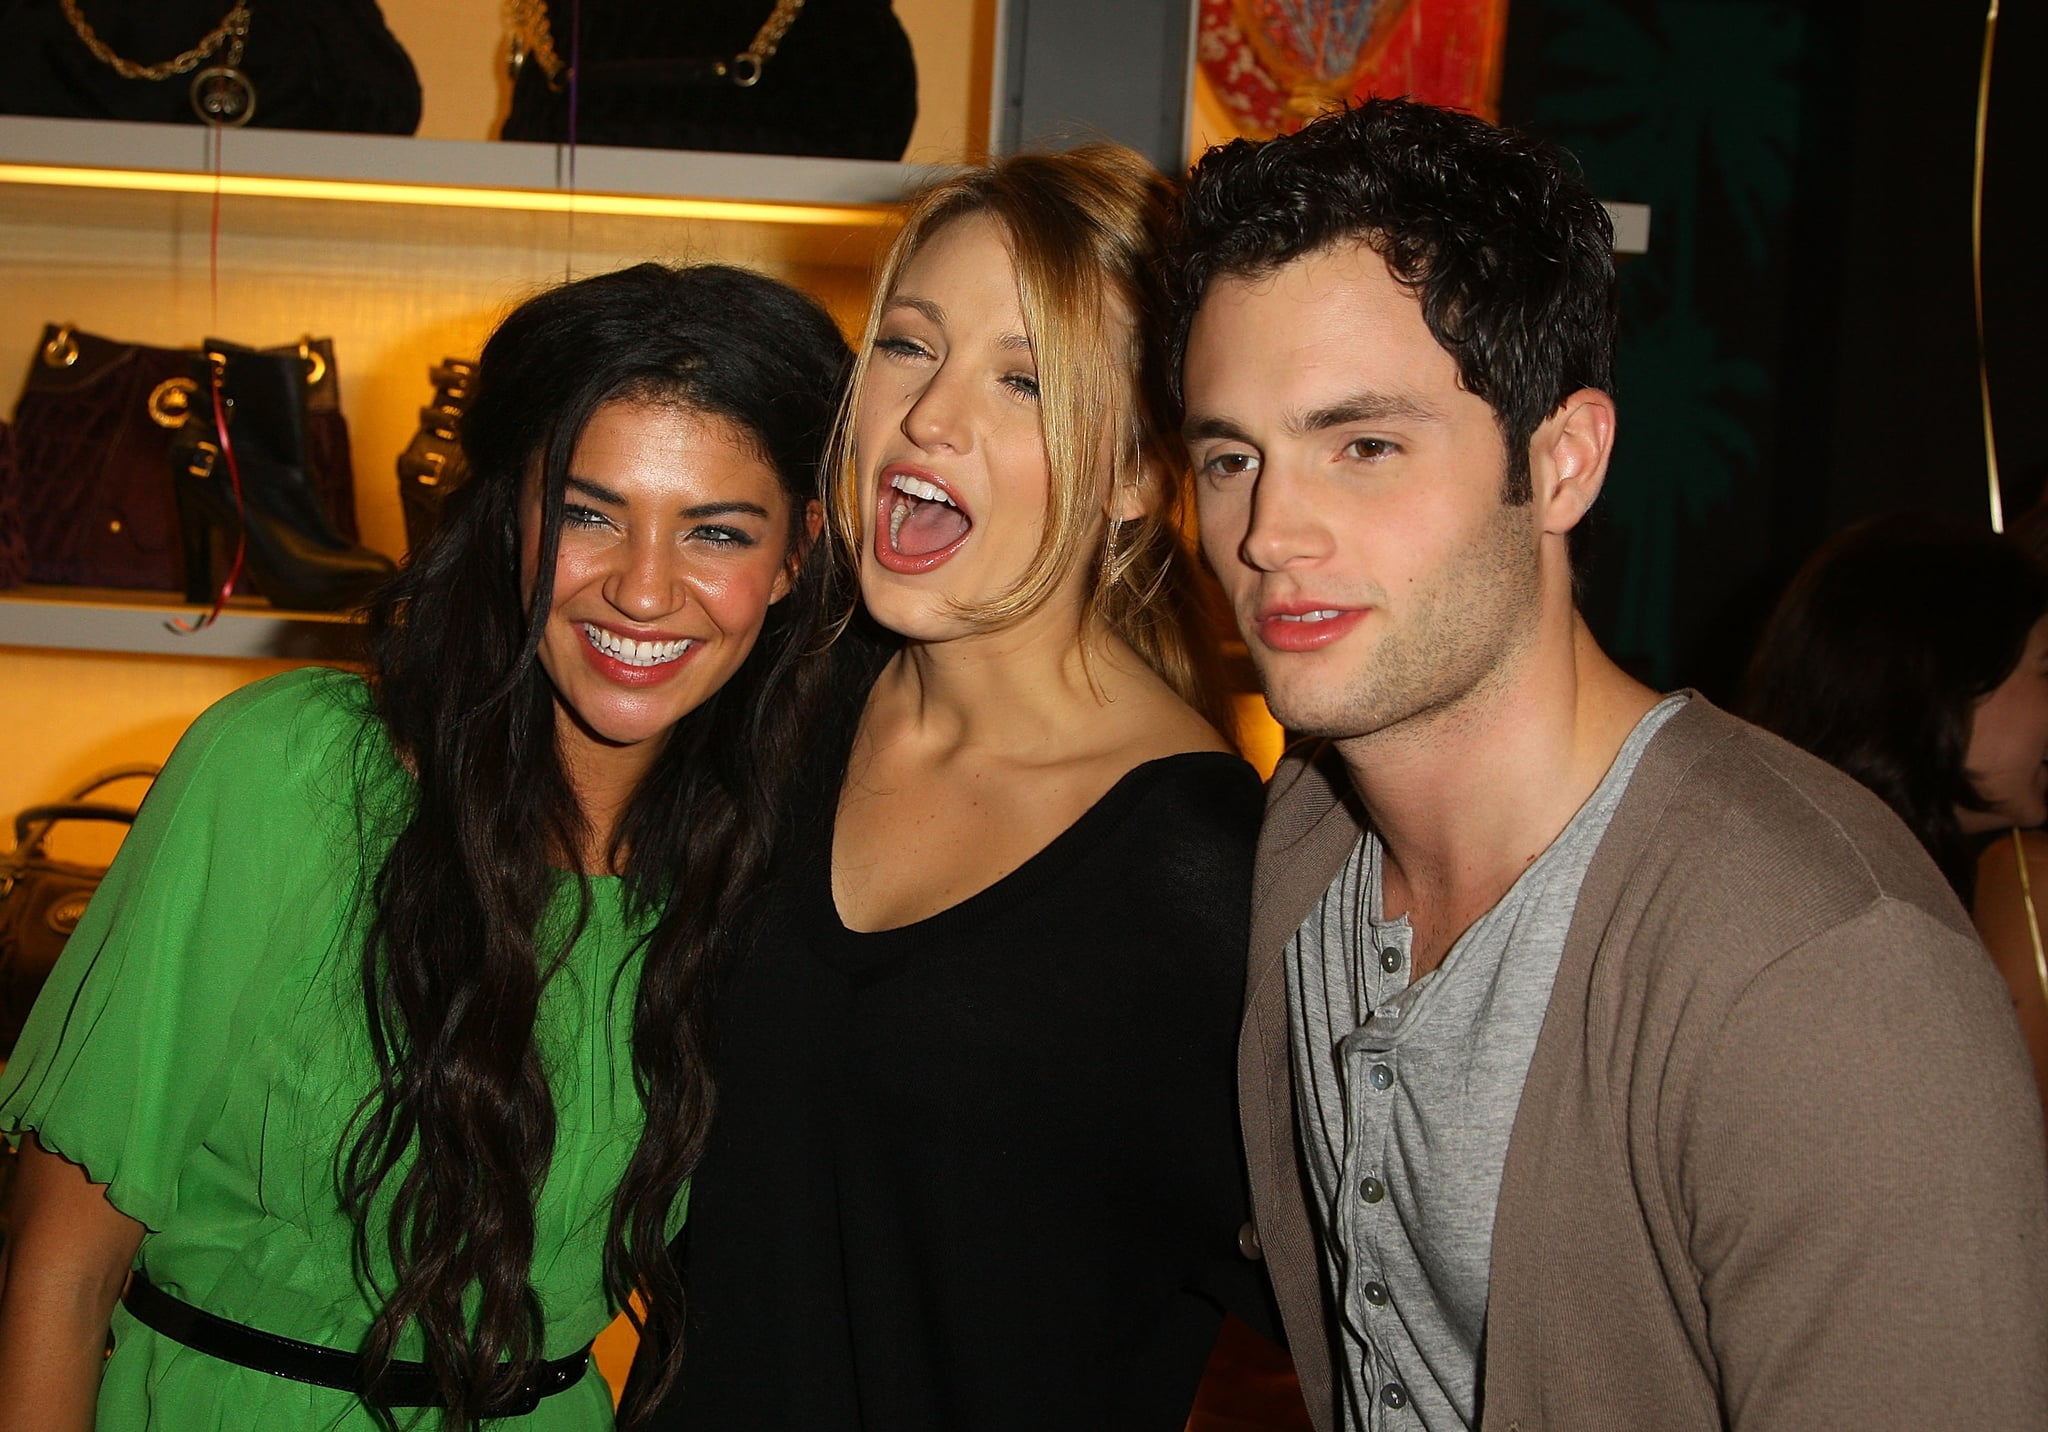 Jessica Szohr hung out with pals Blake Lively and Penn Badgley at the opening party for Juicy Couture's Fifth Avenue flagship store in November 2008.